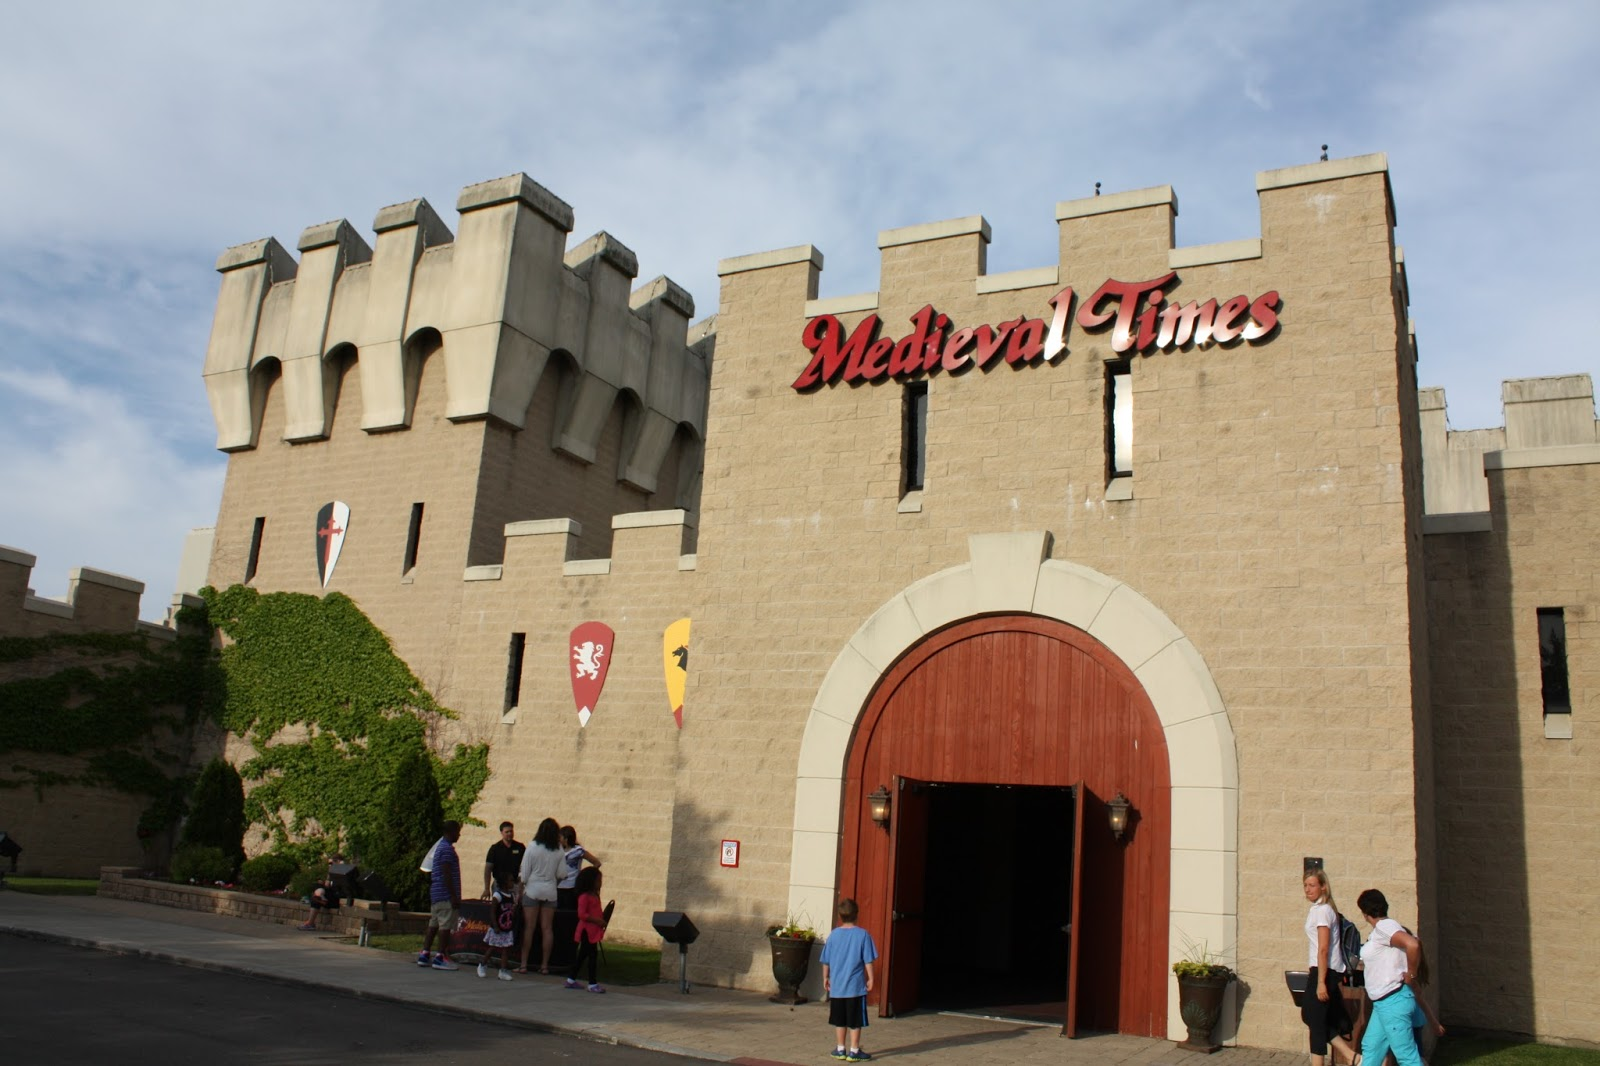 Head to the wonderful city of Schaumburg, IL to check out Medieval Times Chicago. This captivating show is great for guests of all ages, taking them to see what it's like to live in the days of castles, jousting, knights, and more/5.